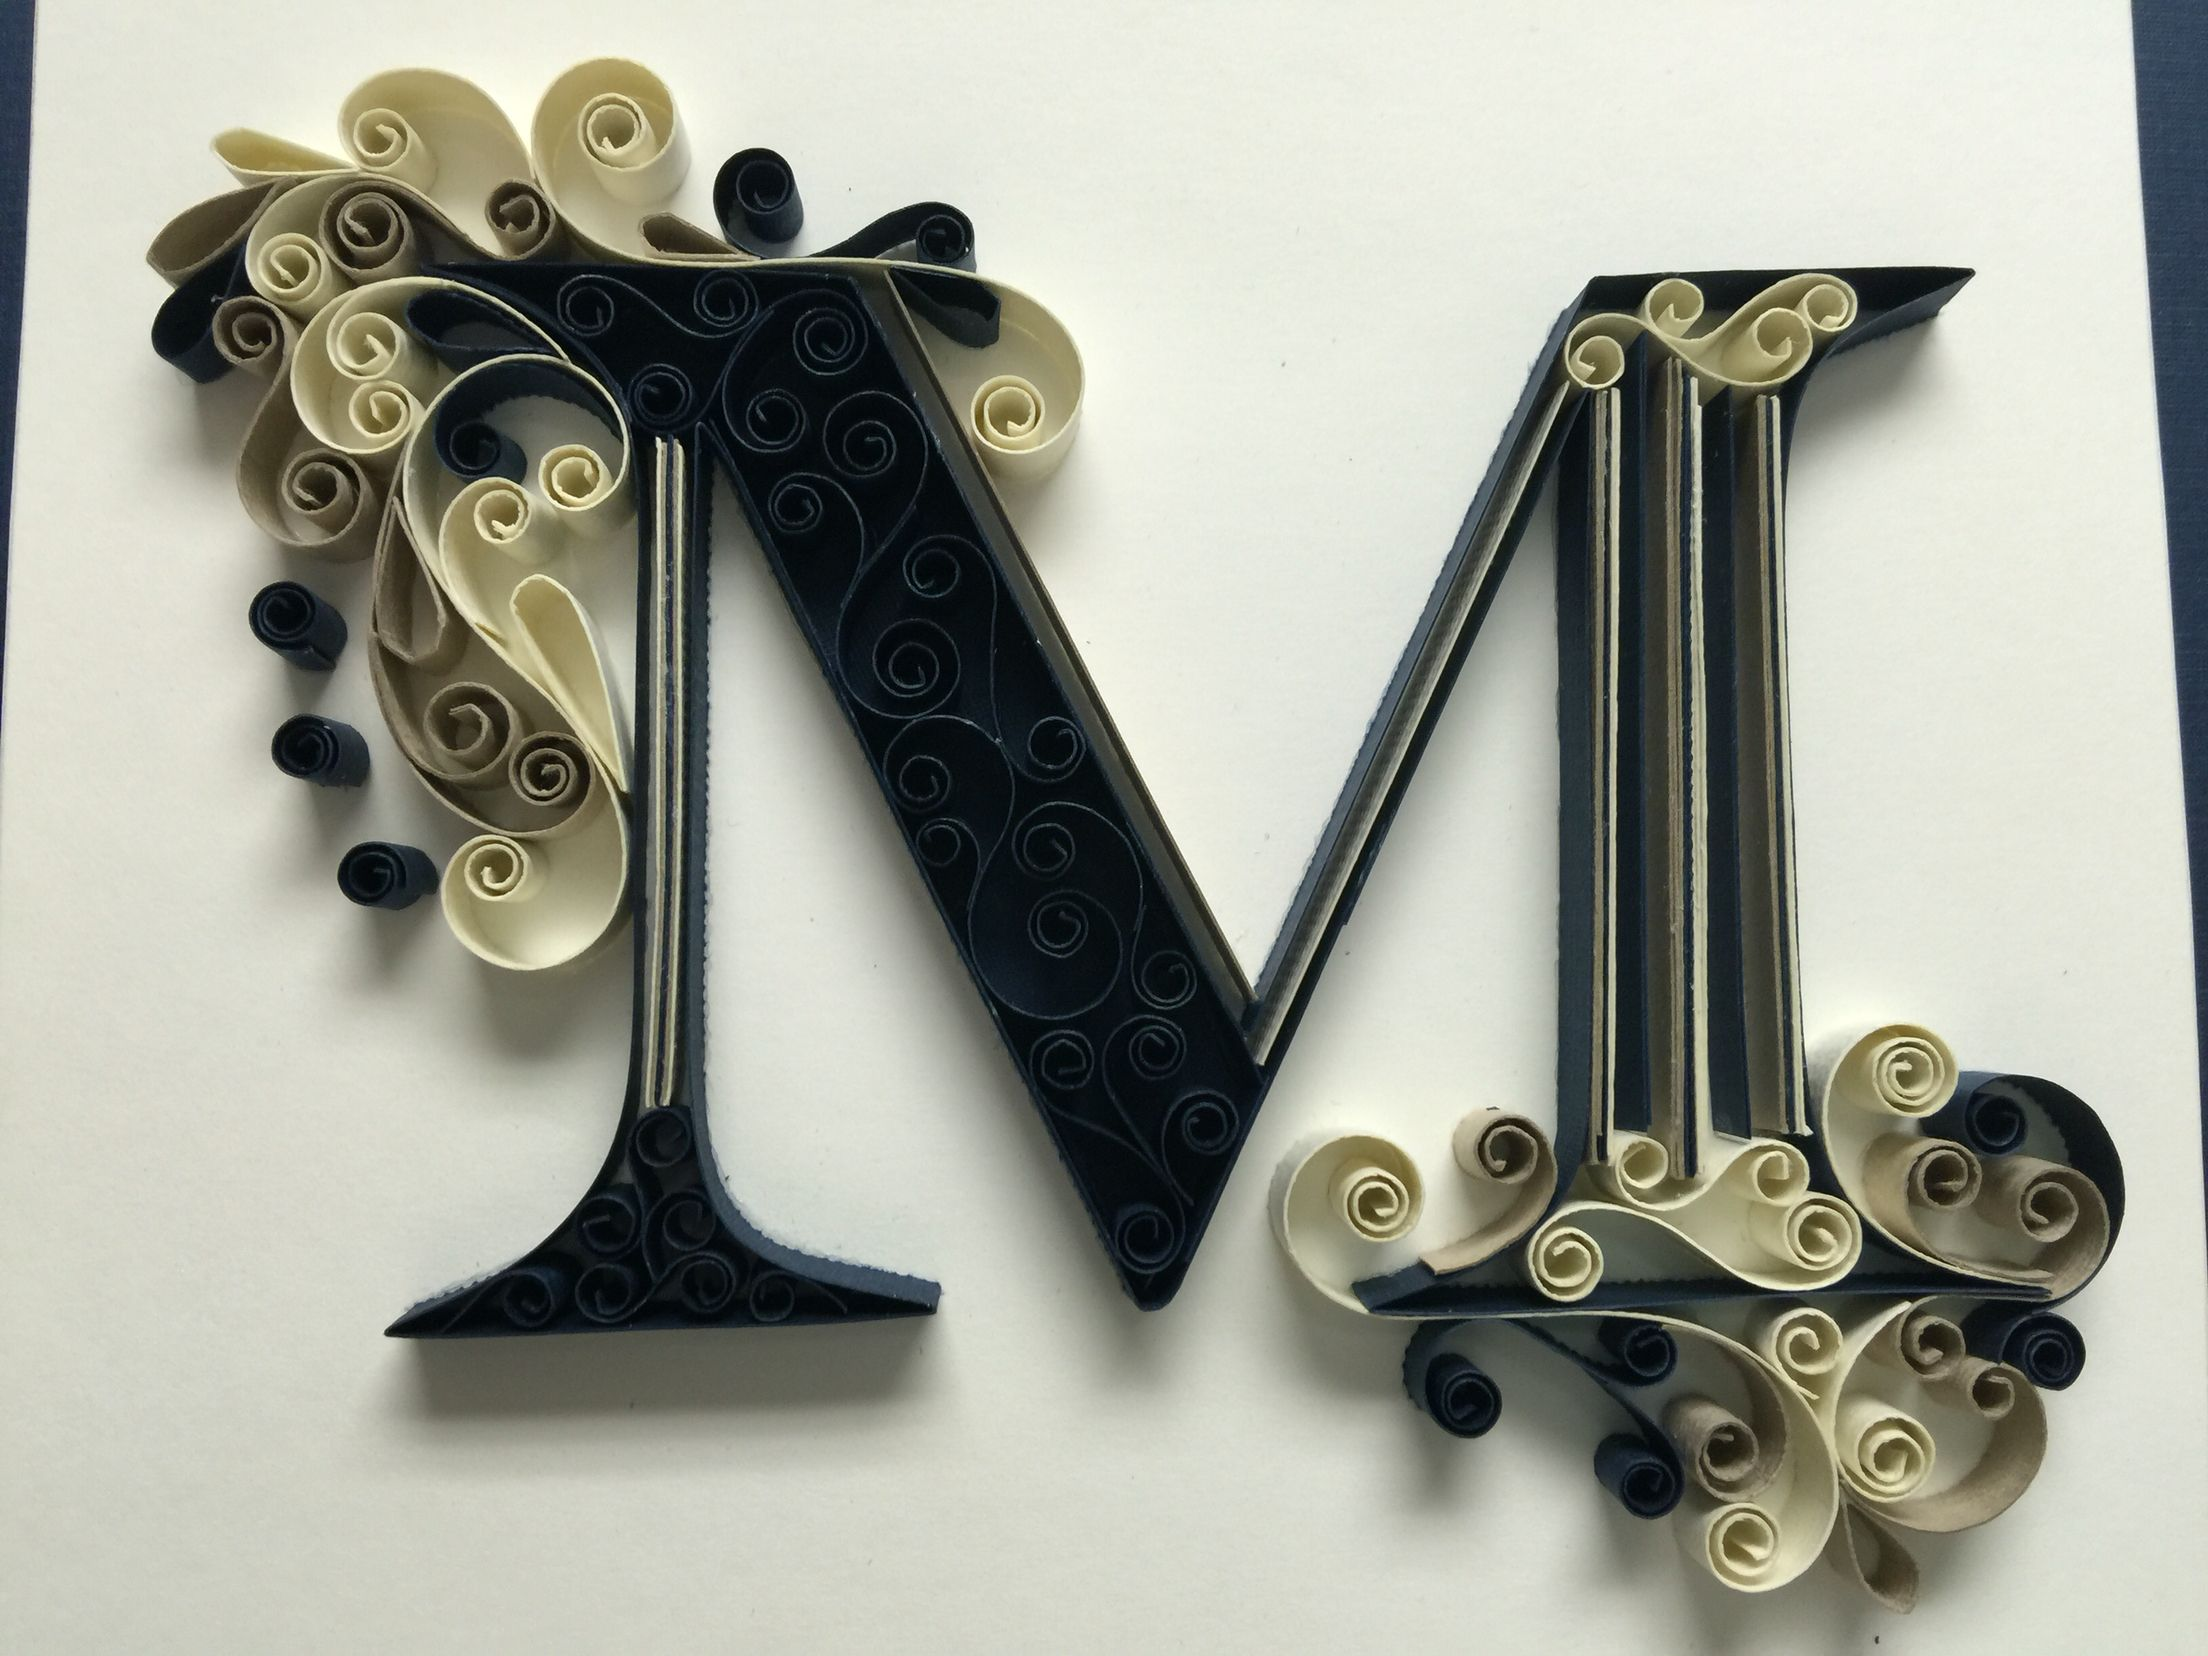 Monogram Quilling Letter M By Amy Creasy Quilling Letters Quilling Quilling Paper Craft